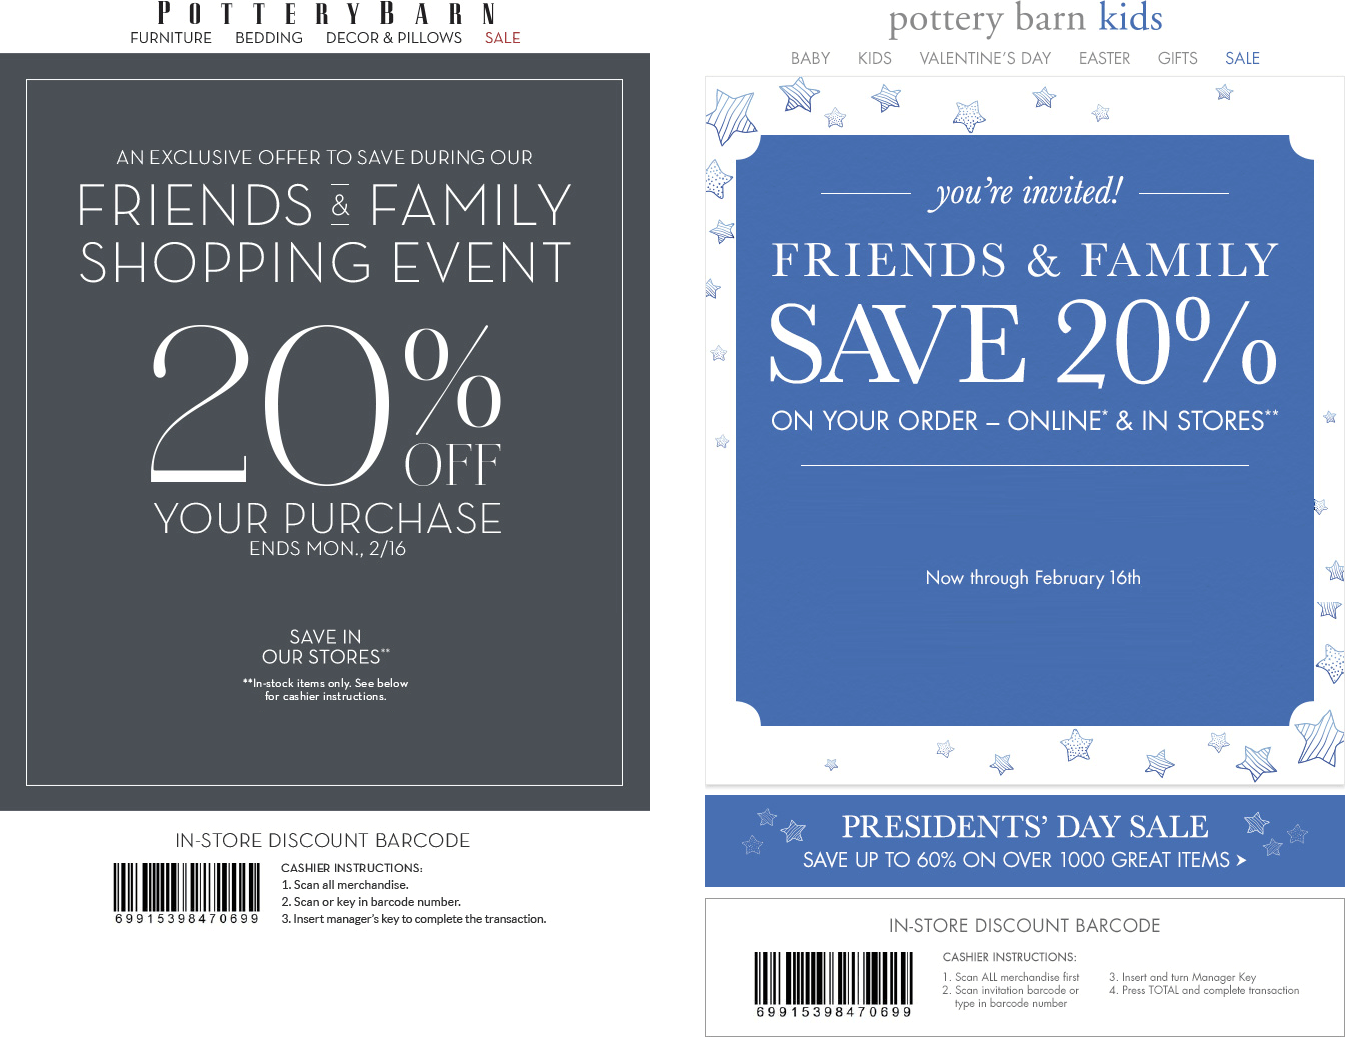 Register at Pottery Barn Kids and receive 10% off all remaining items in your registry for six months after your event date. Get Offer Used 8 times today 10% Off code/5(12).